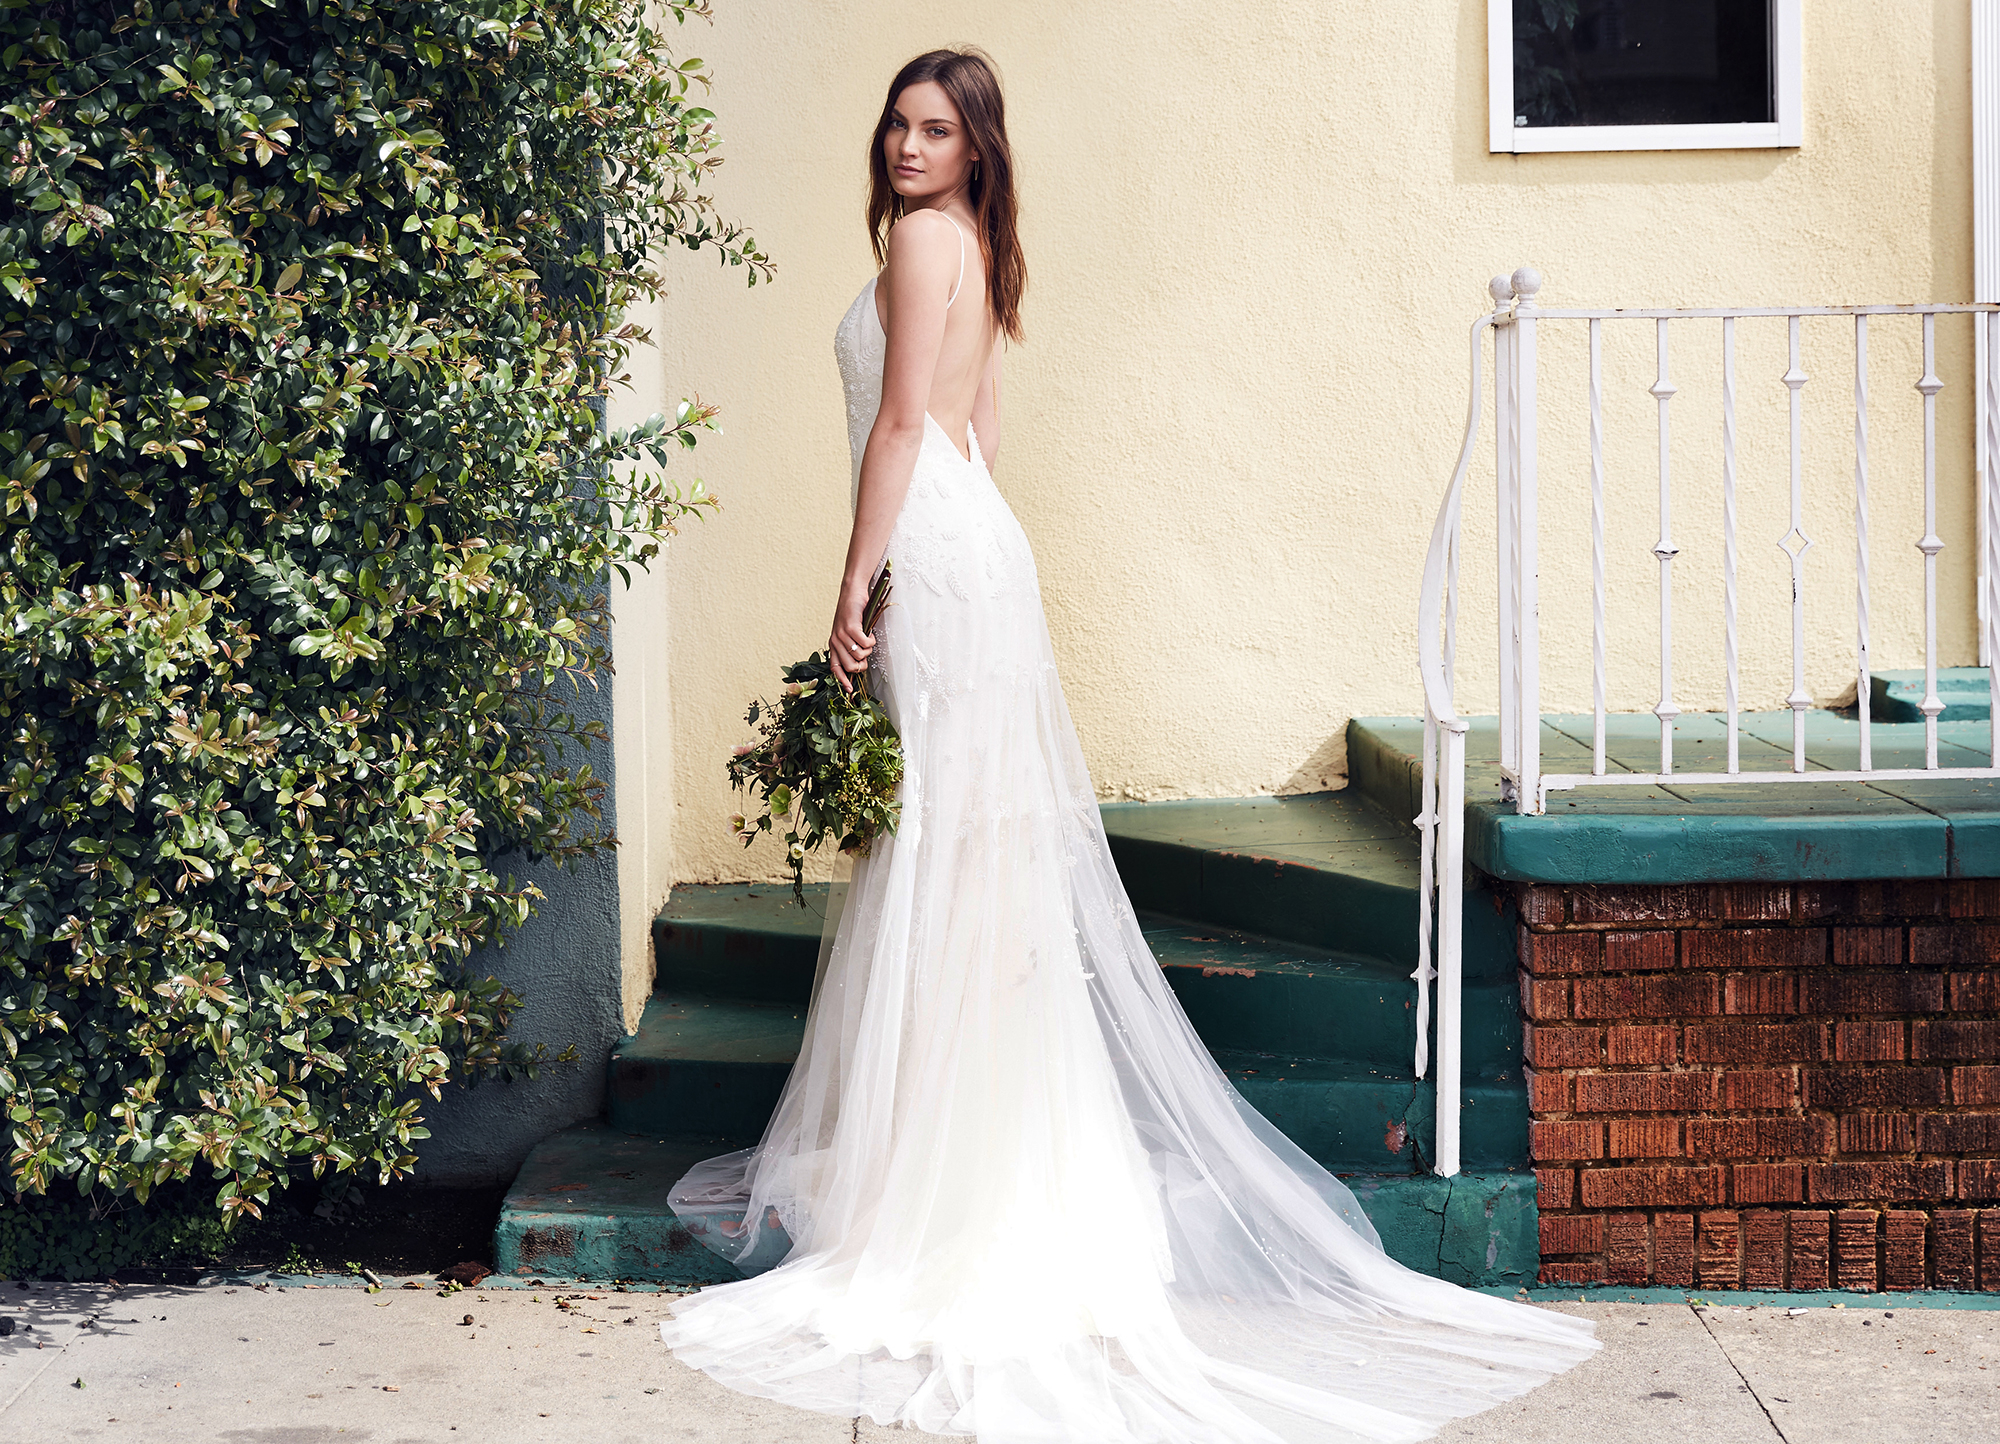 c6fedab84b2 Oscar Nominee Emma Stone s Style Inspired This Bridal Gown